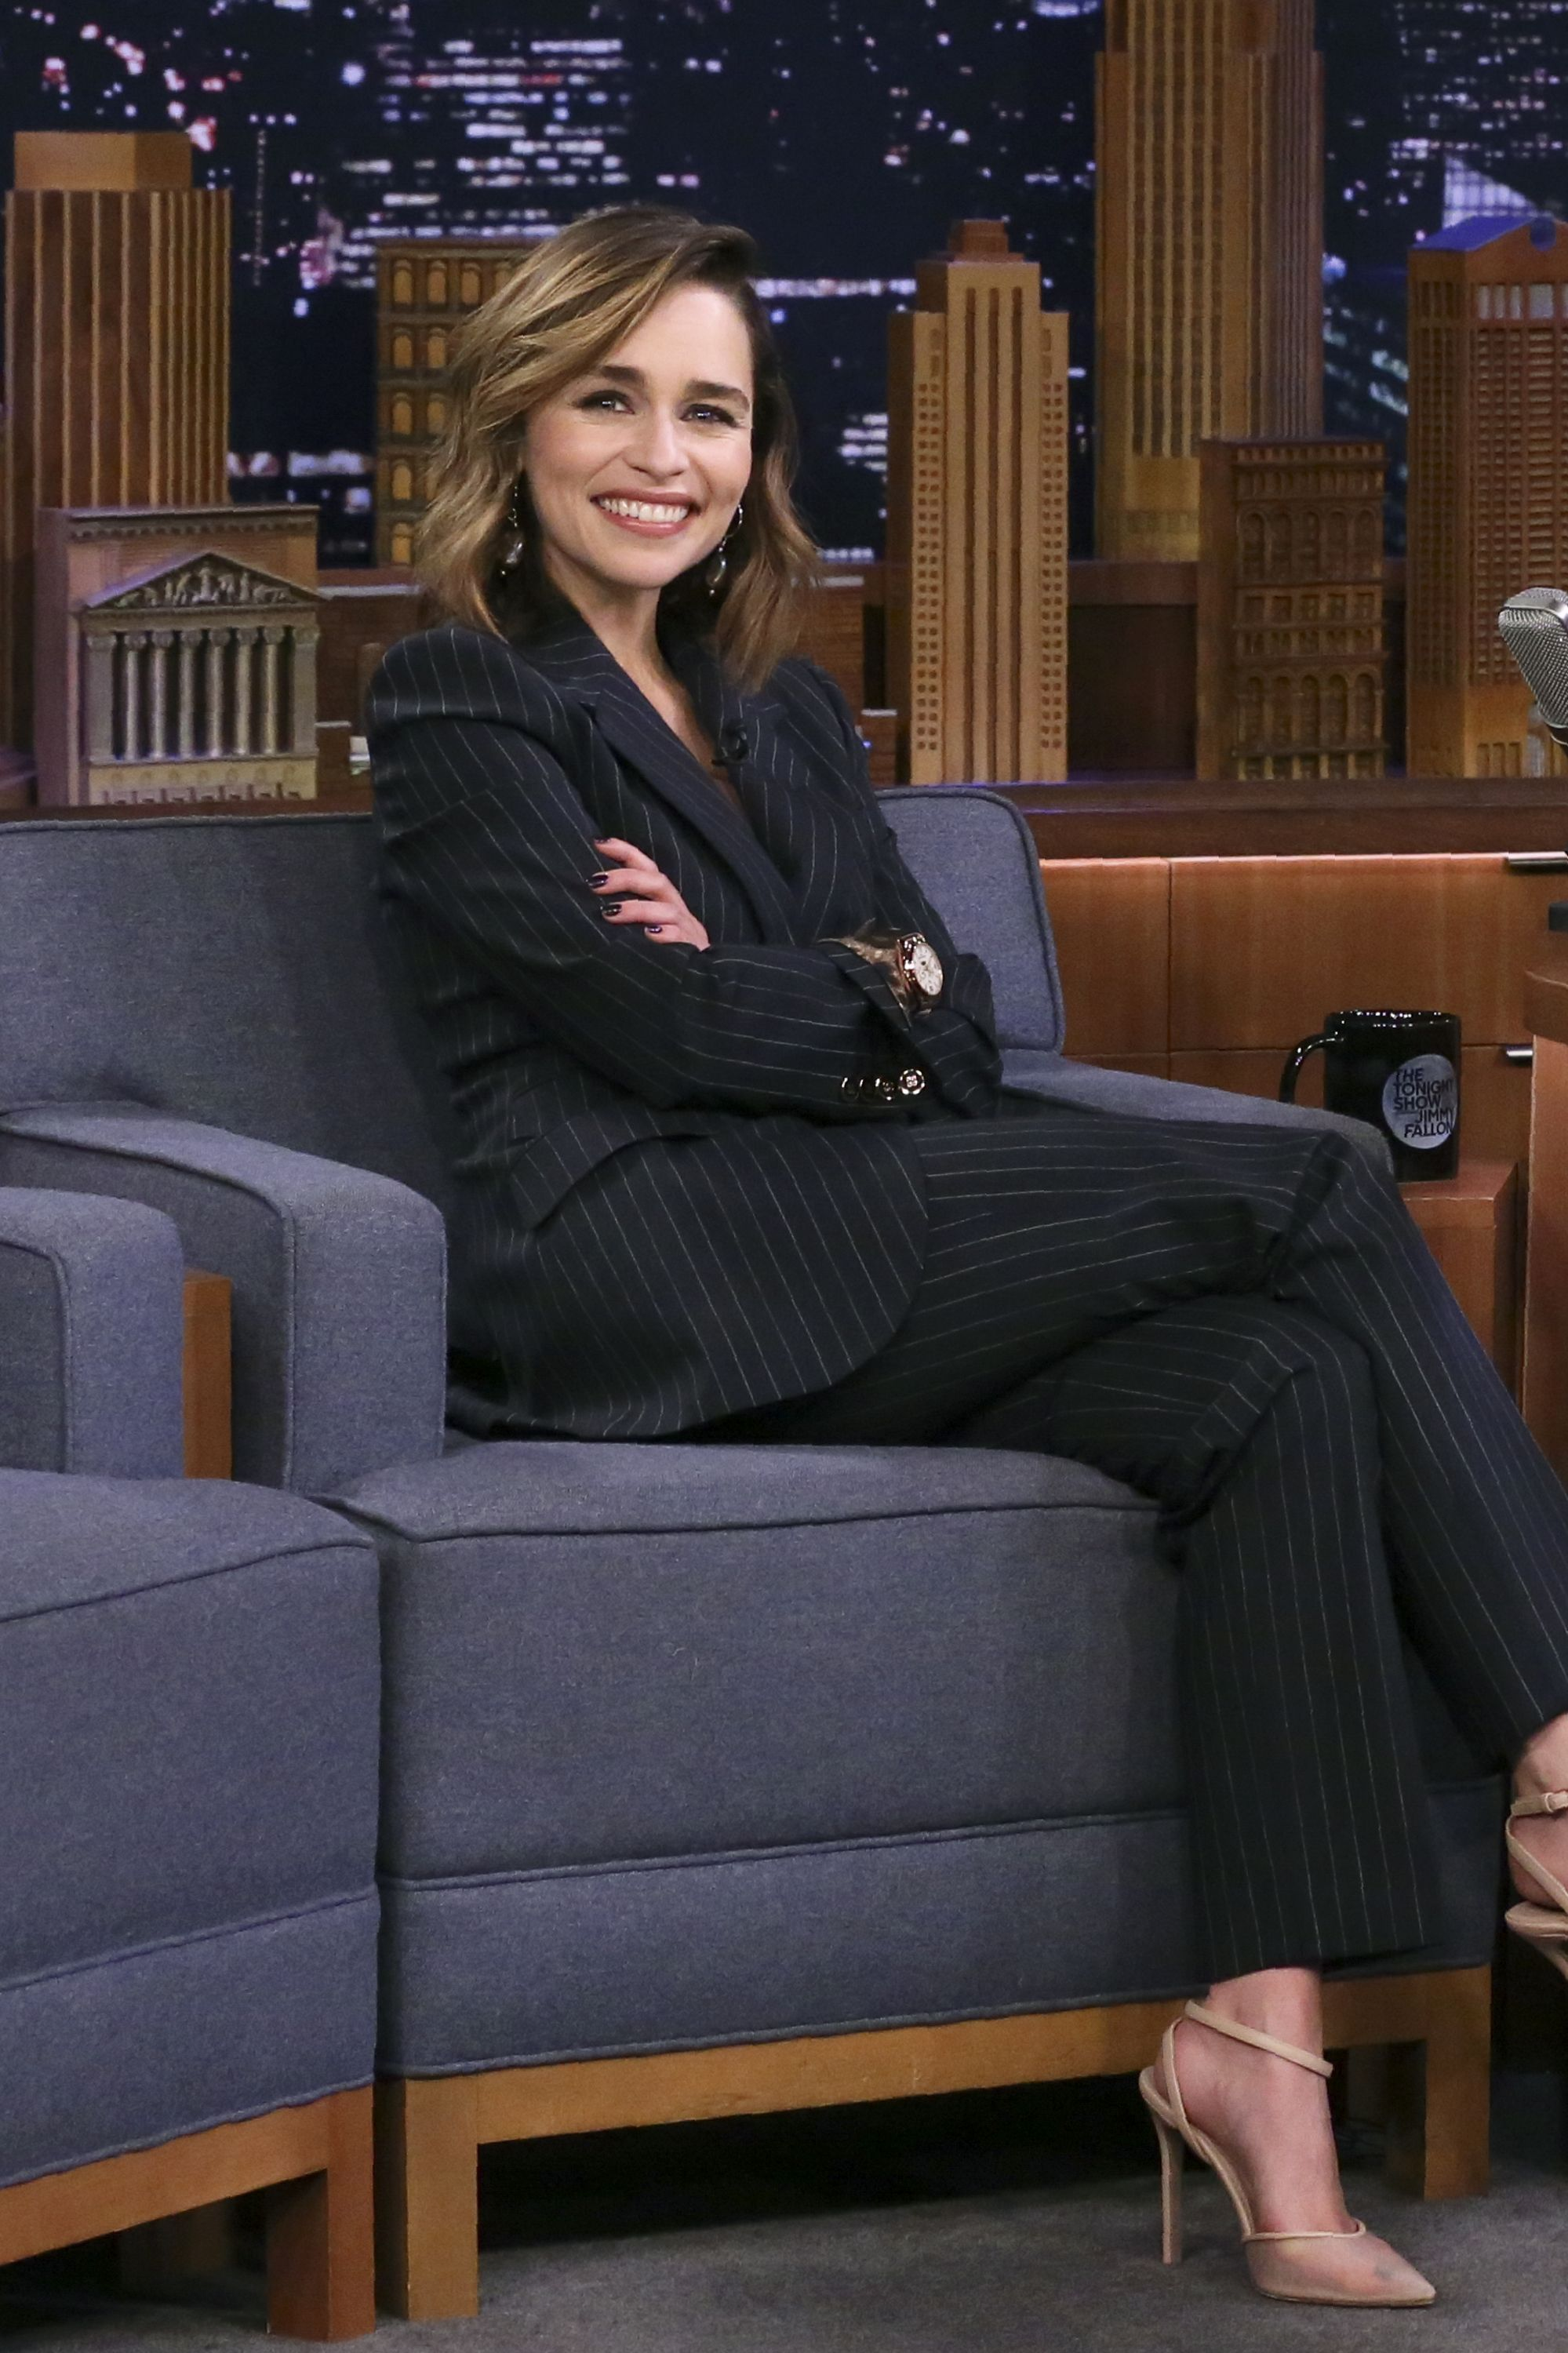 Emilia Clarke In Dolce & Gabbana - The Tonight Show Starring Jimmy Fallon #emiliaclarke